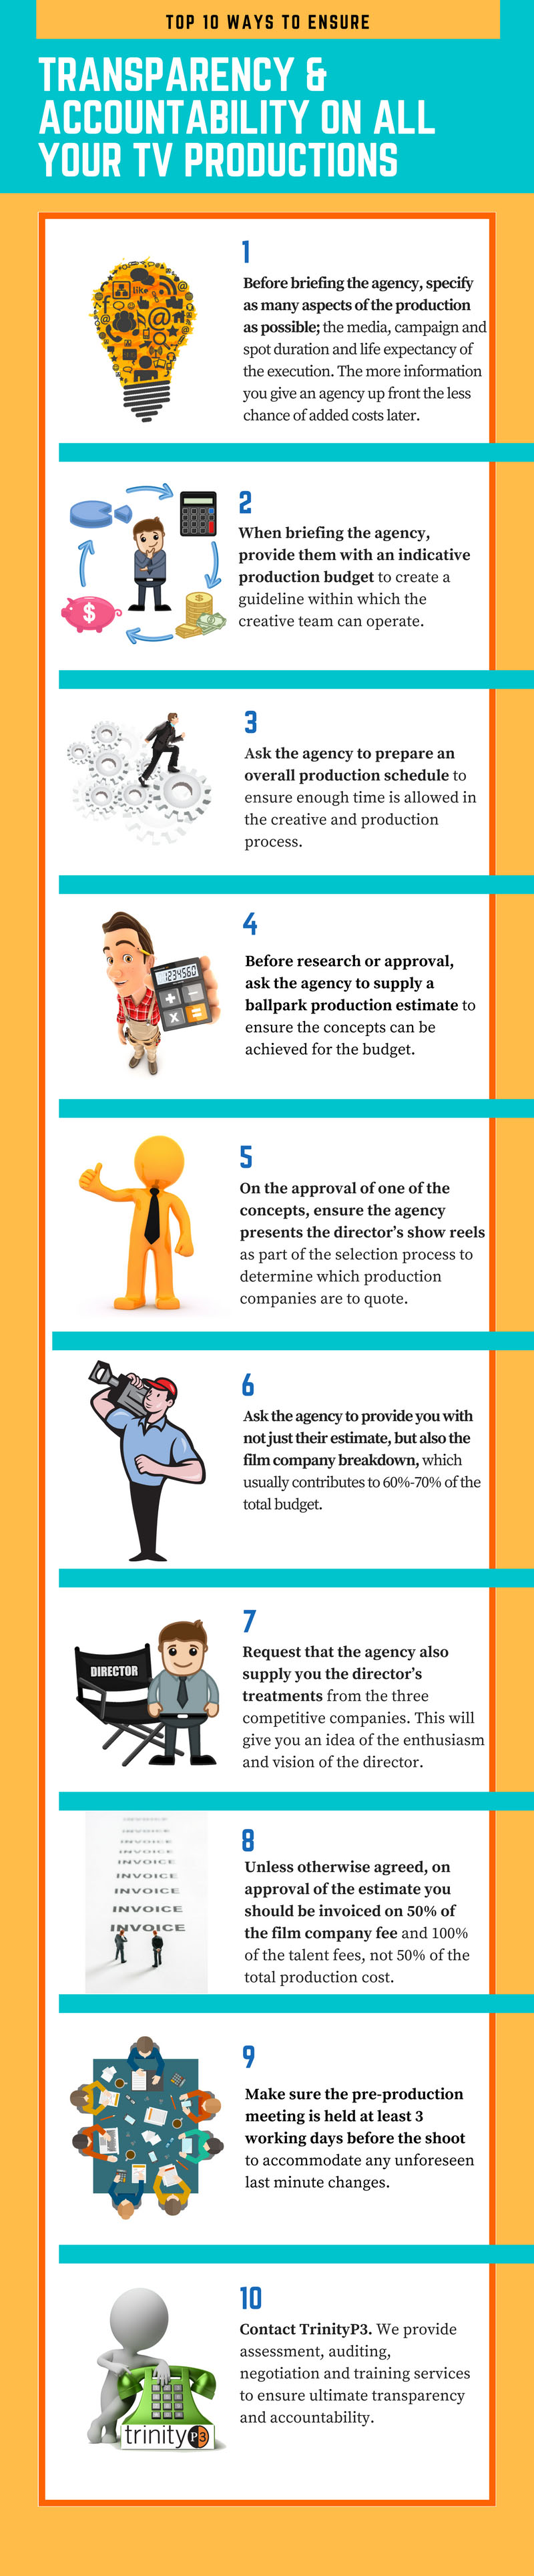 Top 10 ways to ensure transparency & accountability on all your TV productions